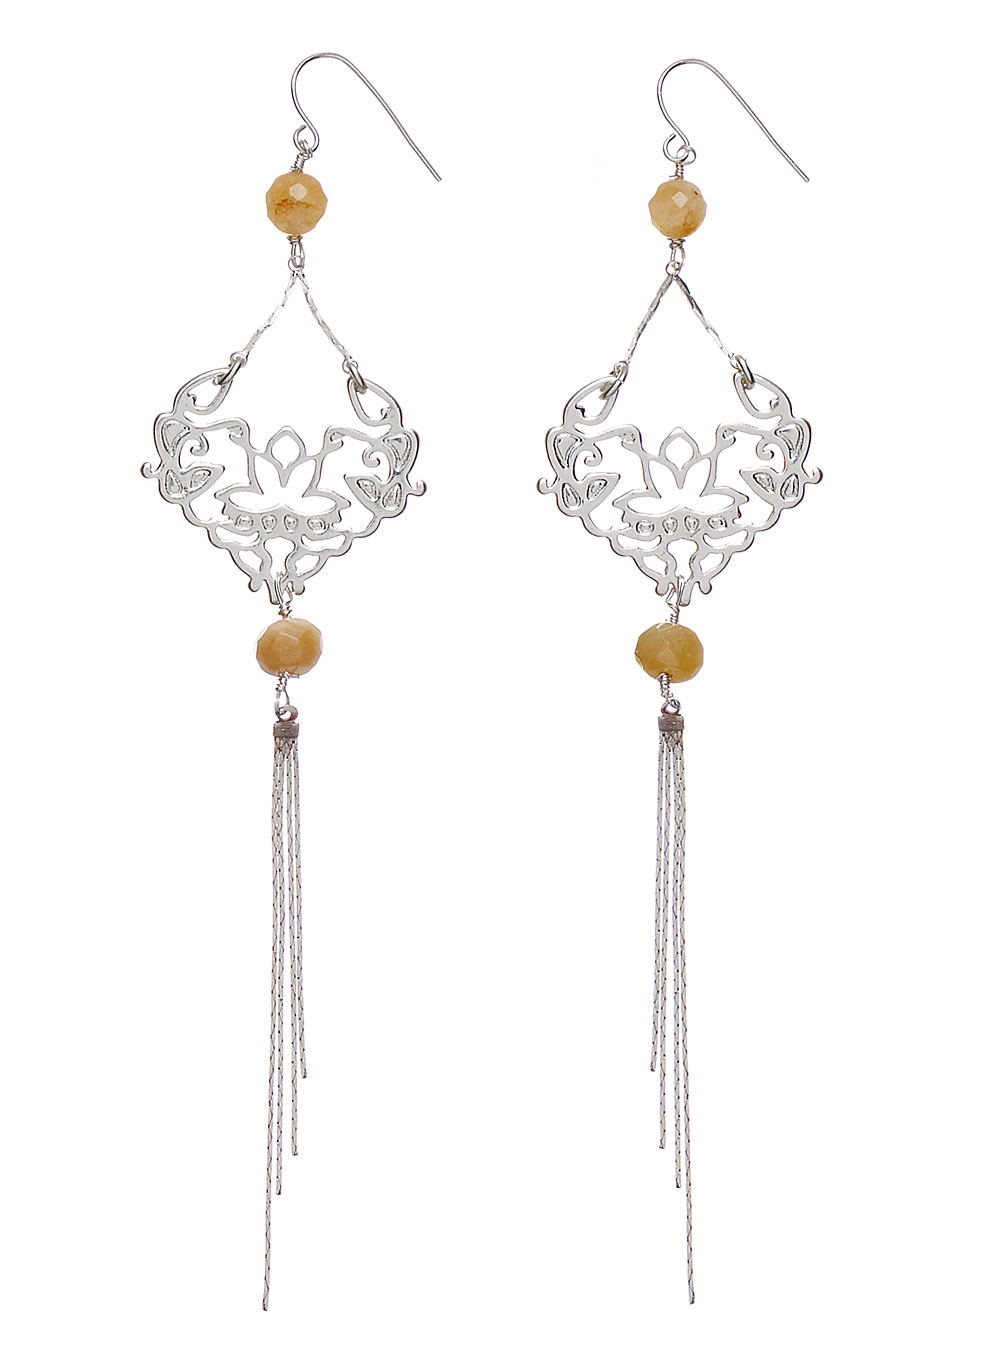 PILGRIM - Oriental - Long Drop Earrings - Silver Plate & Caramel Quartz BNWT